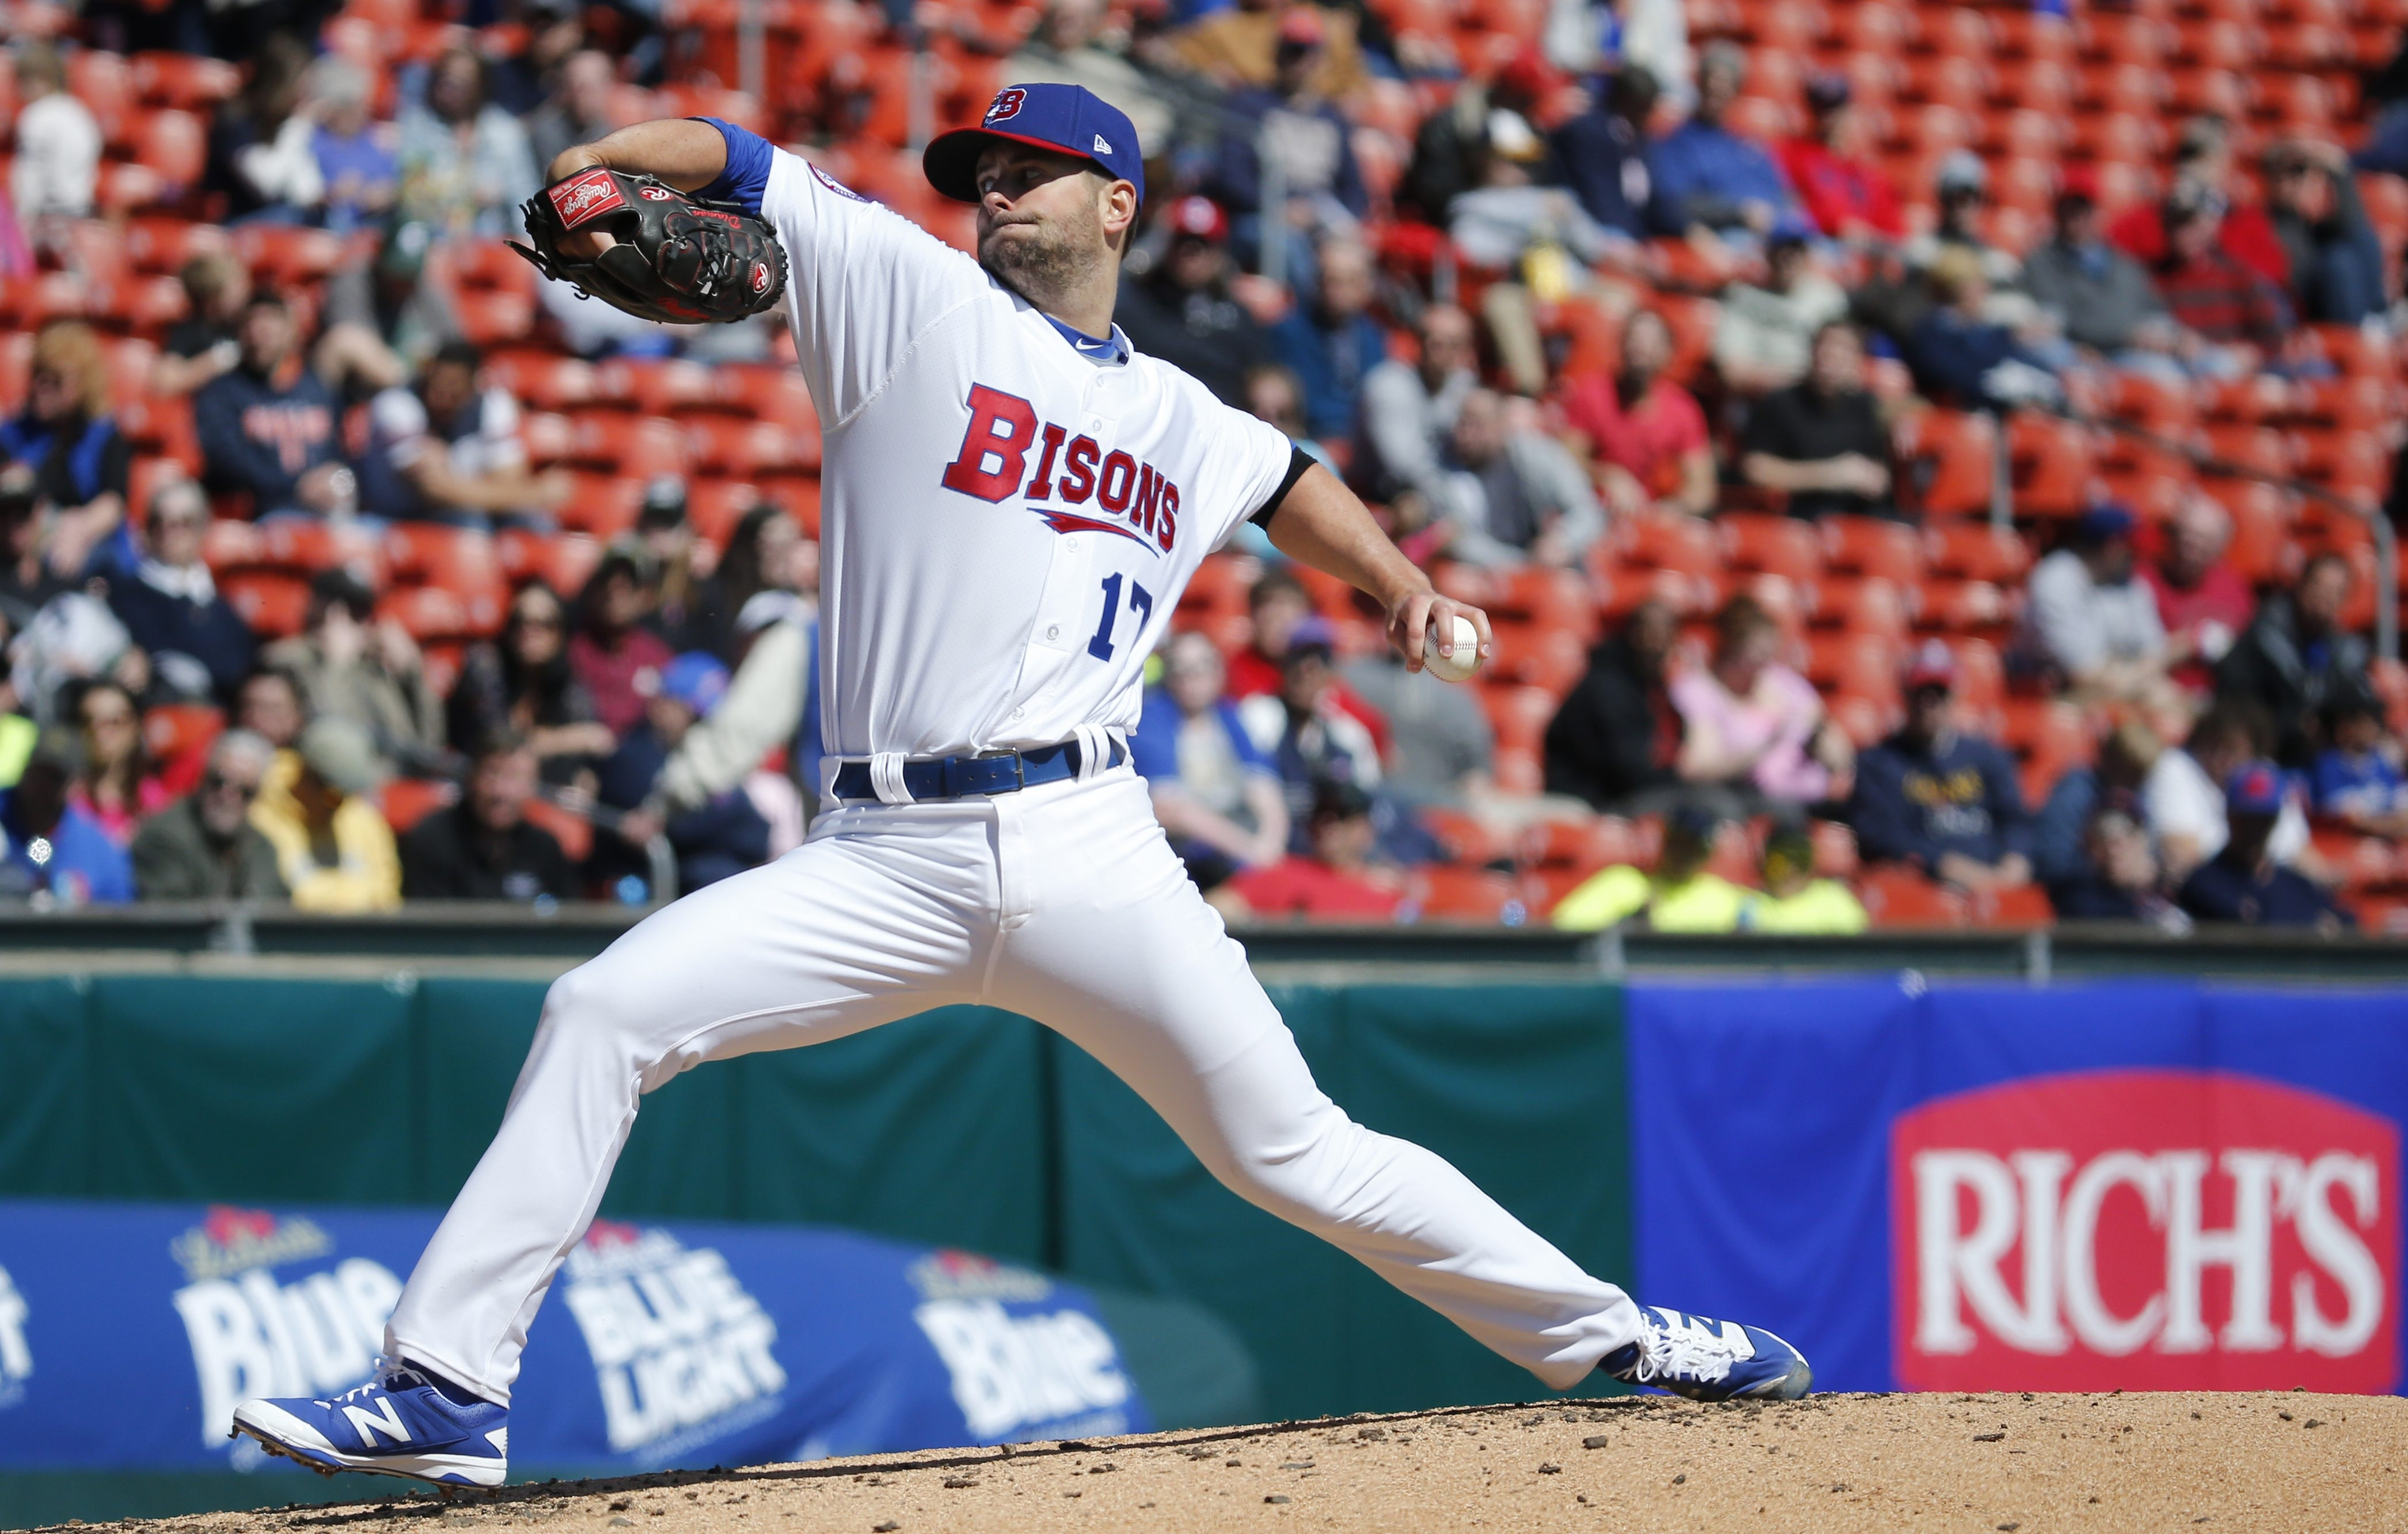 Buffalo Bisons pitcher Scott Diamond, winding up in the fourth inning, helped the Herd to a 2-1 win Thursday over the Rochester Red Wings.